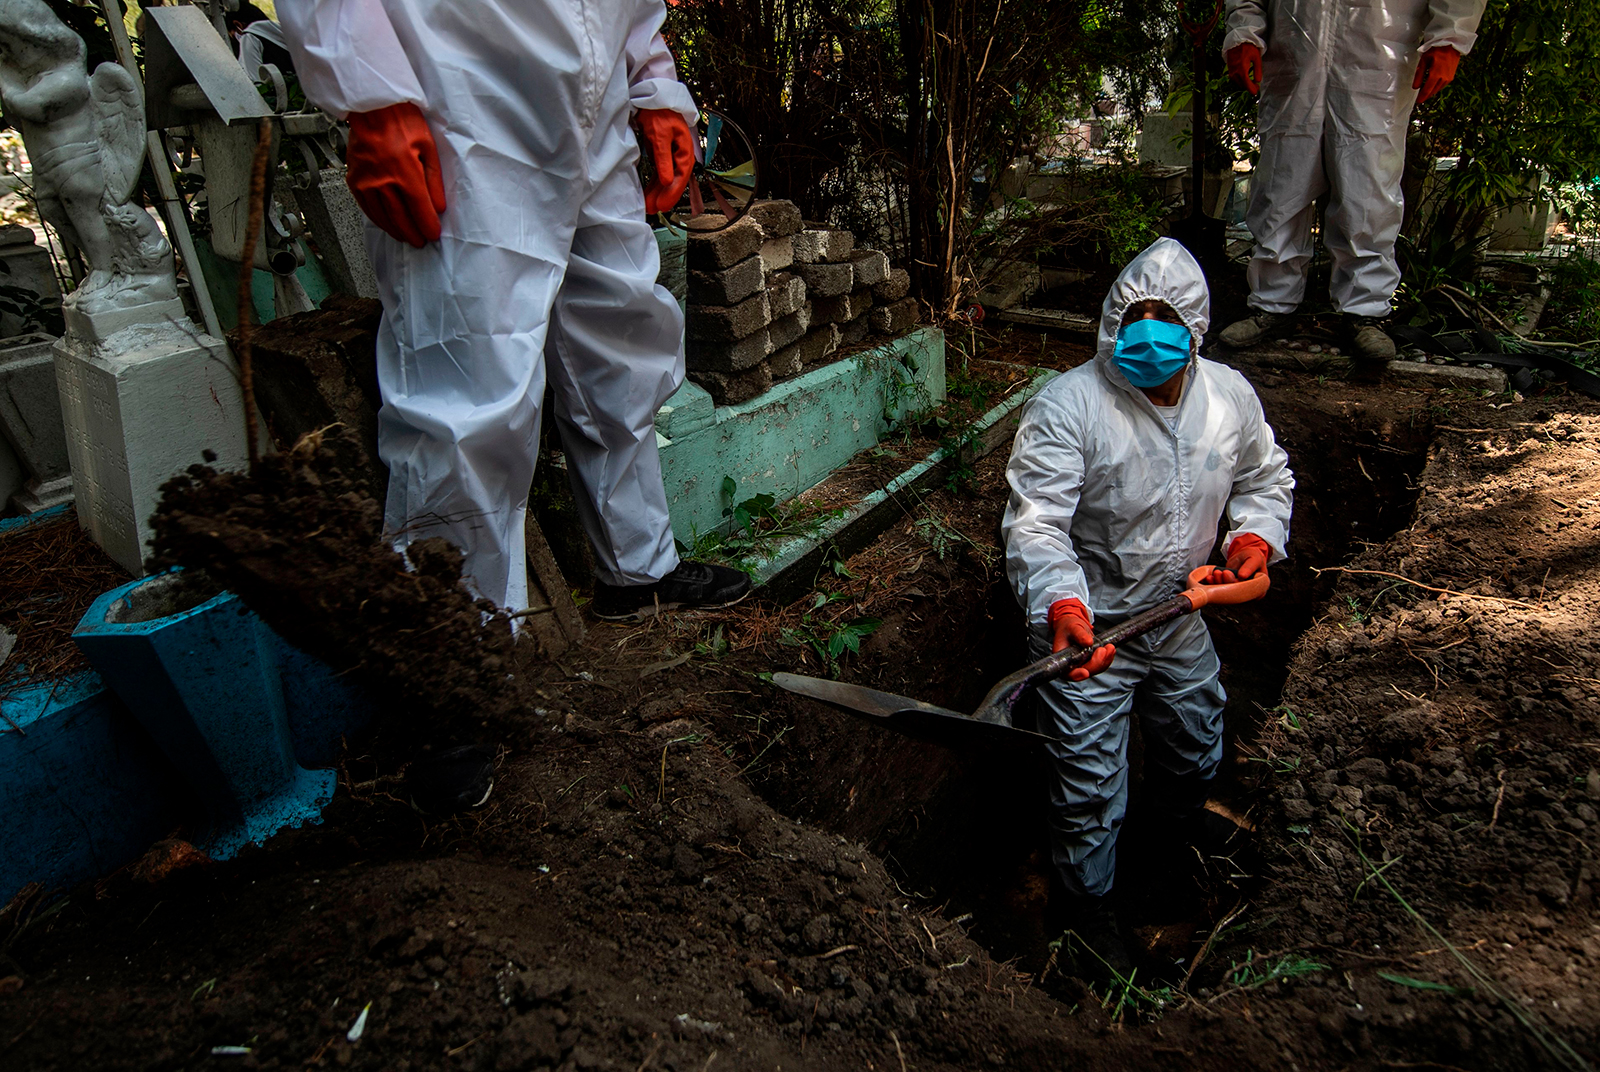 A gravedigger works during a funeral at the San Isidro cemetery in Azcapotzalco, in Mexico City, on August 6.